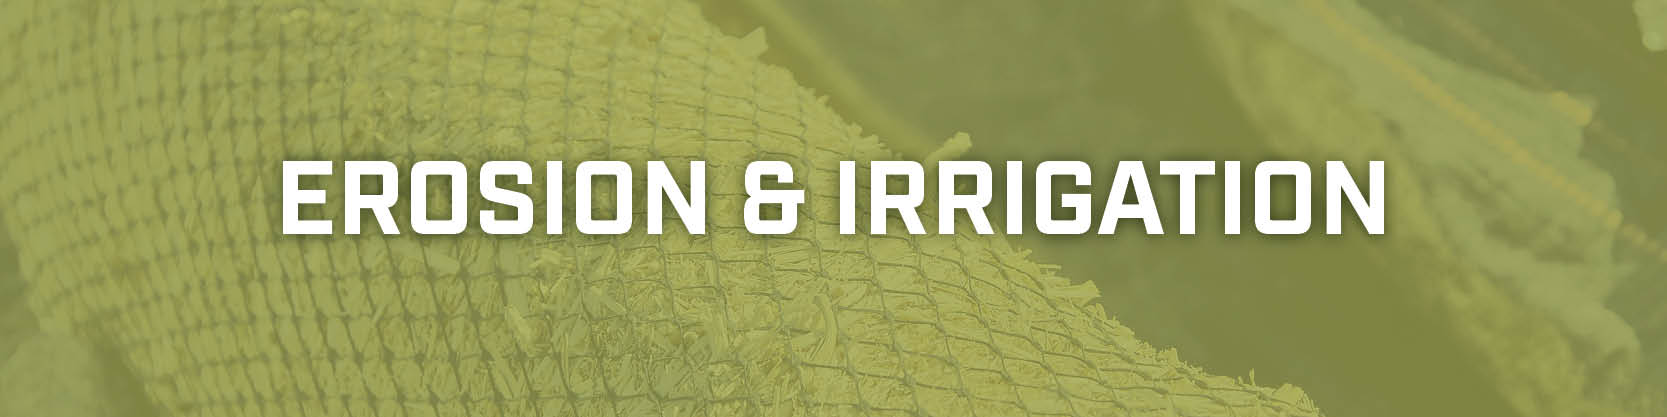 ProductCategories-Erosion&Irrigation